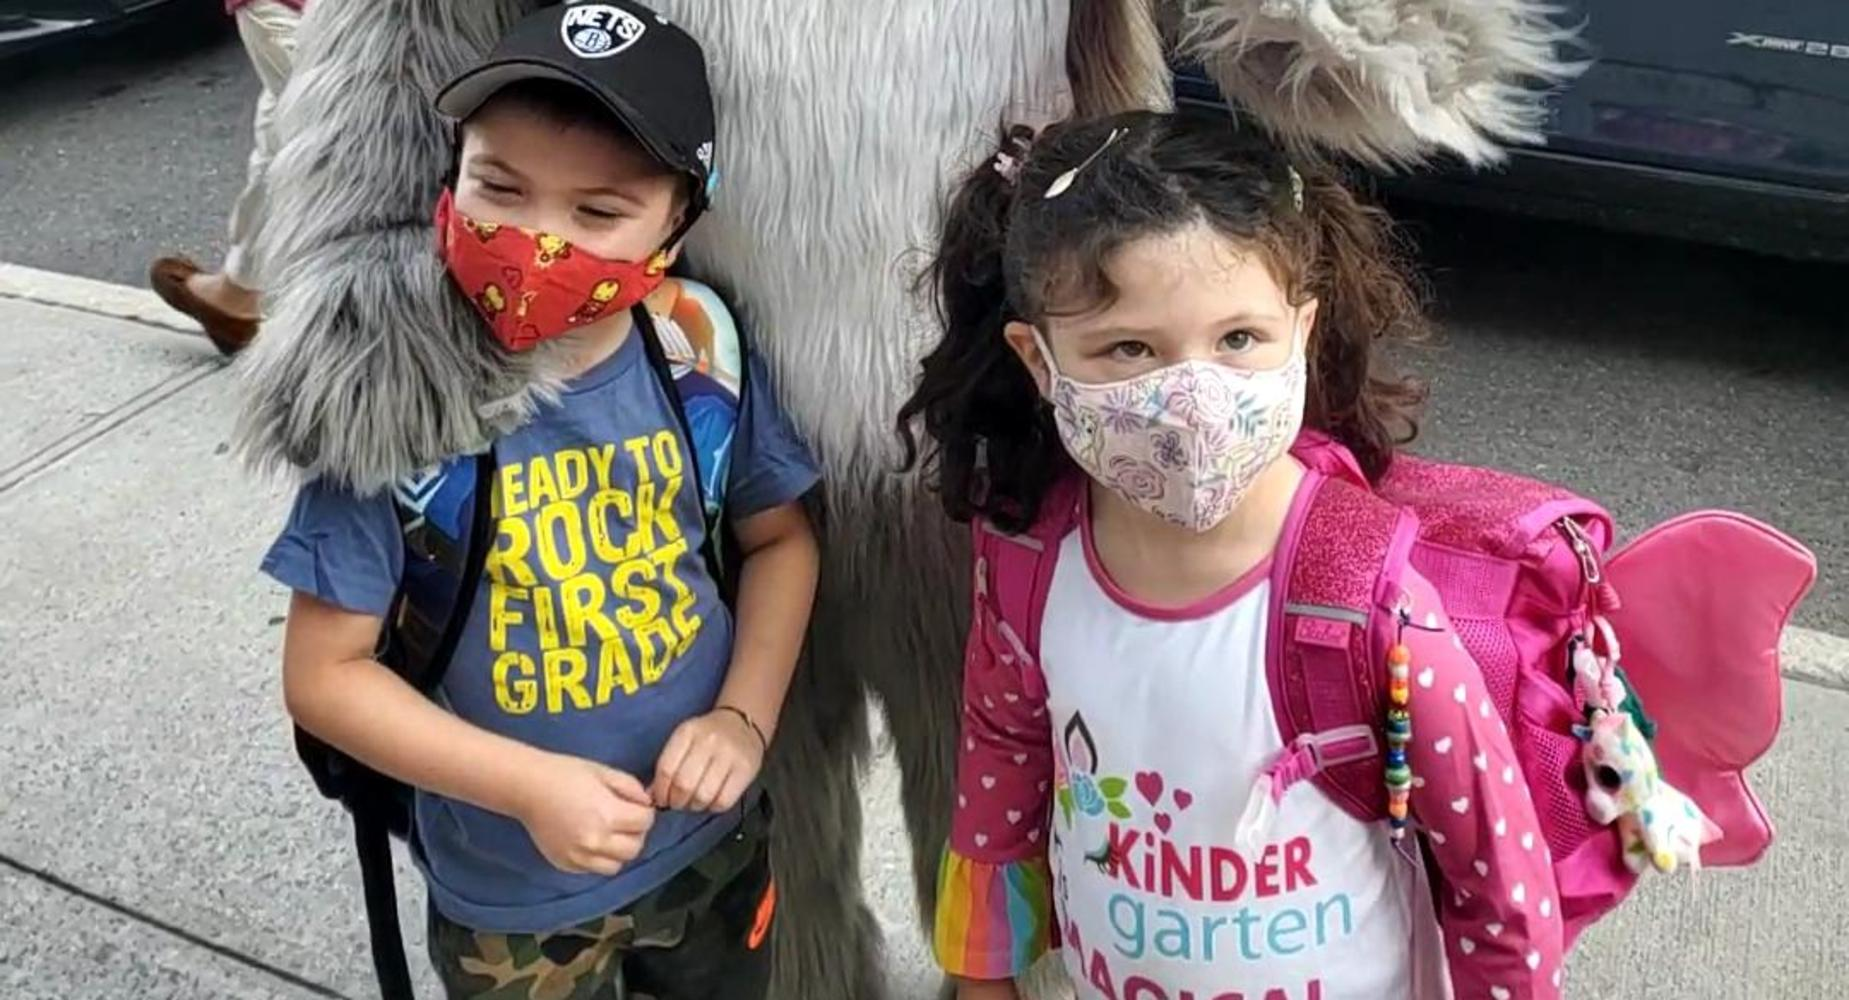 boy wearing hat and girl wearing pink and white shirt and pink backpack in front of husky mascot